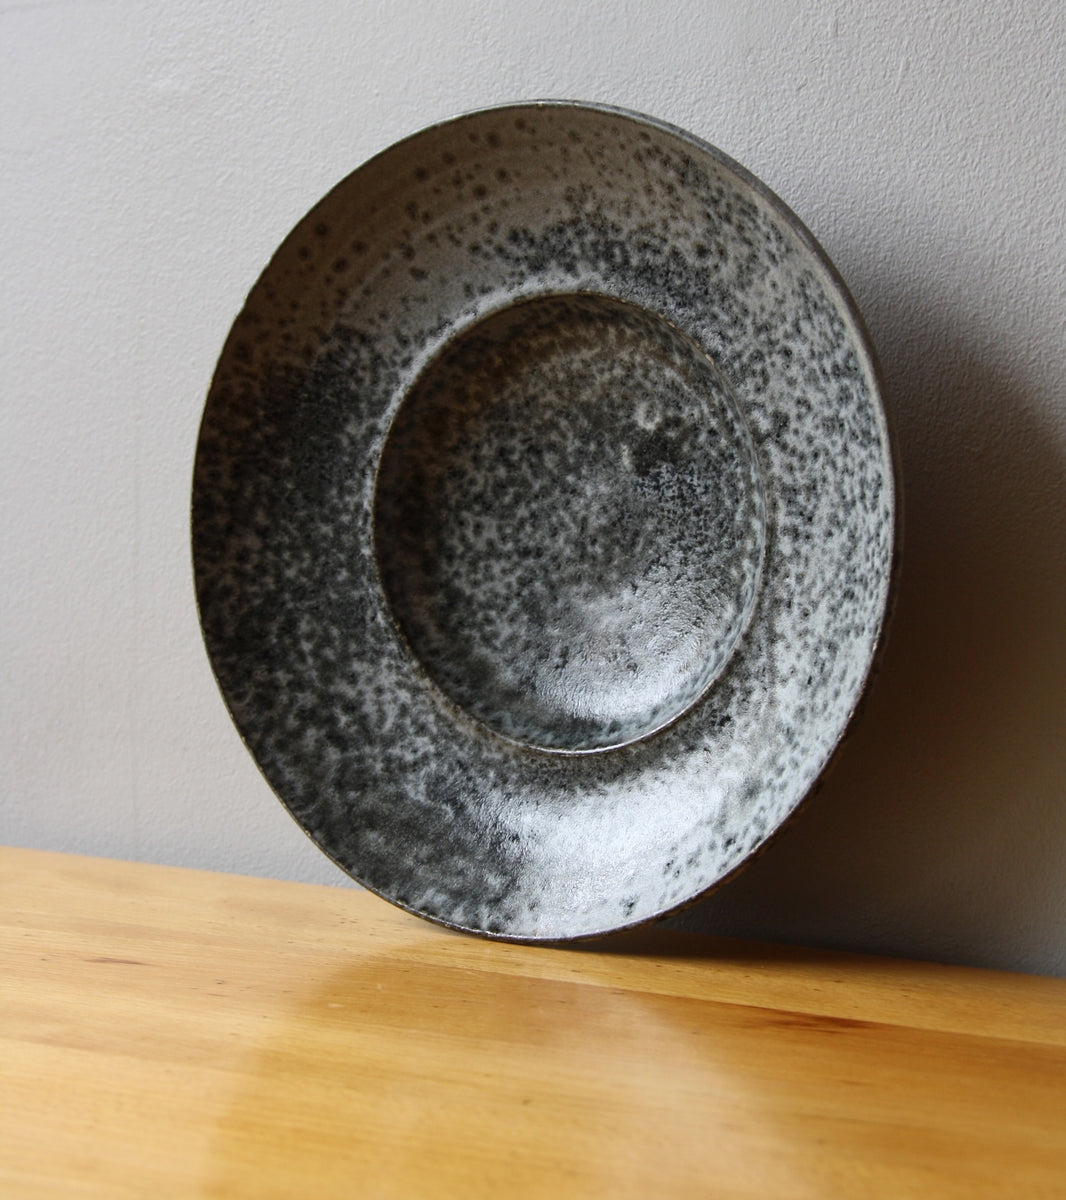 Large Flat Out Bowl 11Grey Glaze Kasper Würtz - Image 8